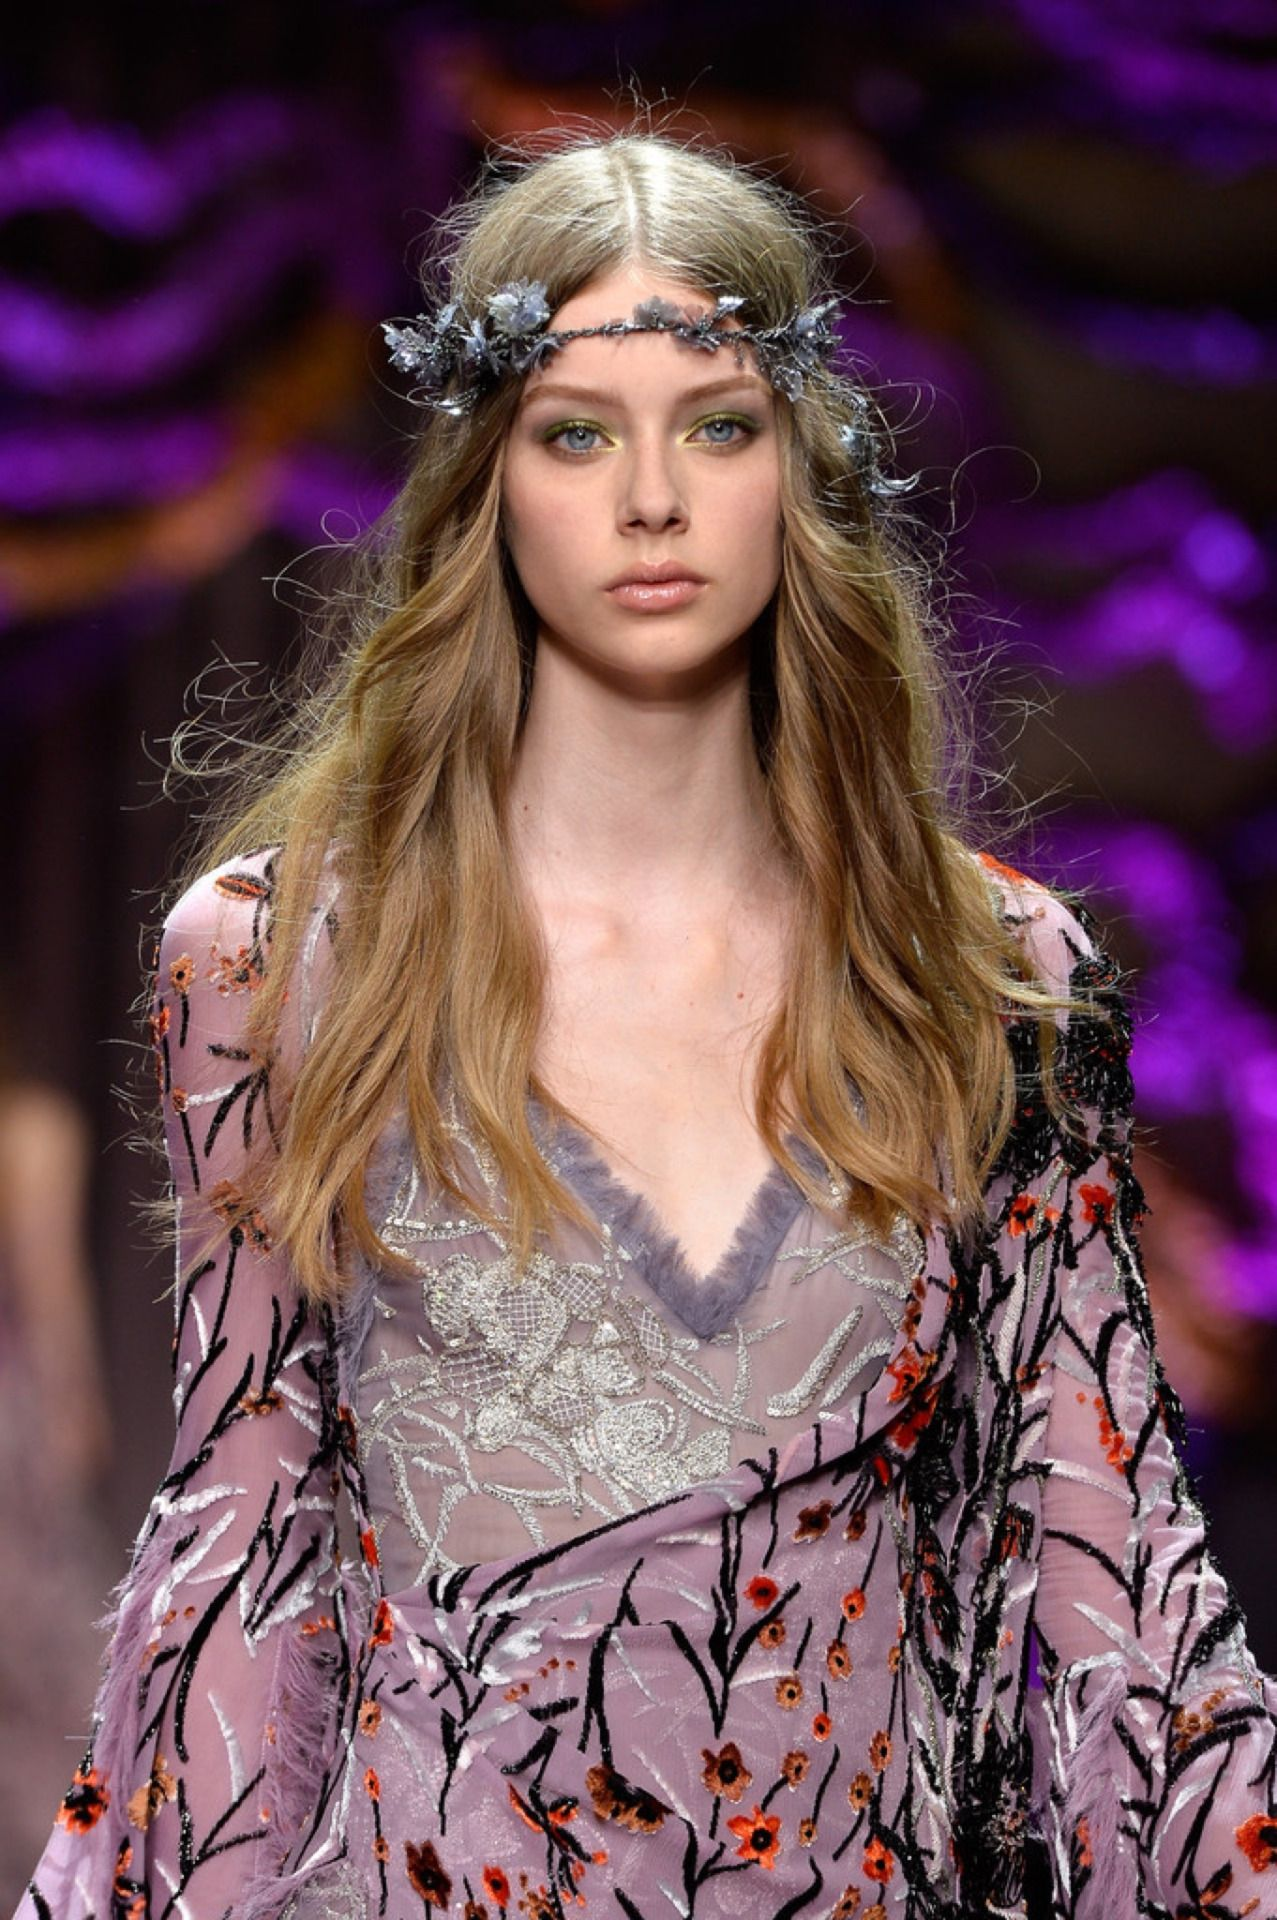 Empress Empire Lauren De Graaf Dark Blonde Hair Fashion Shows 2015